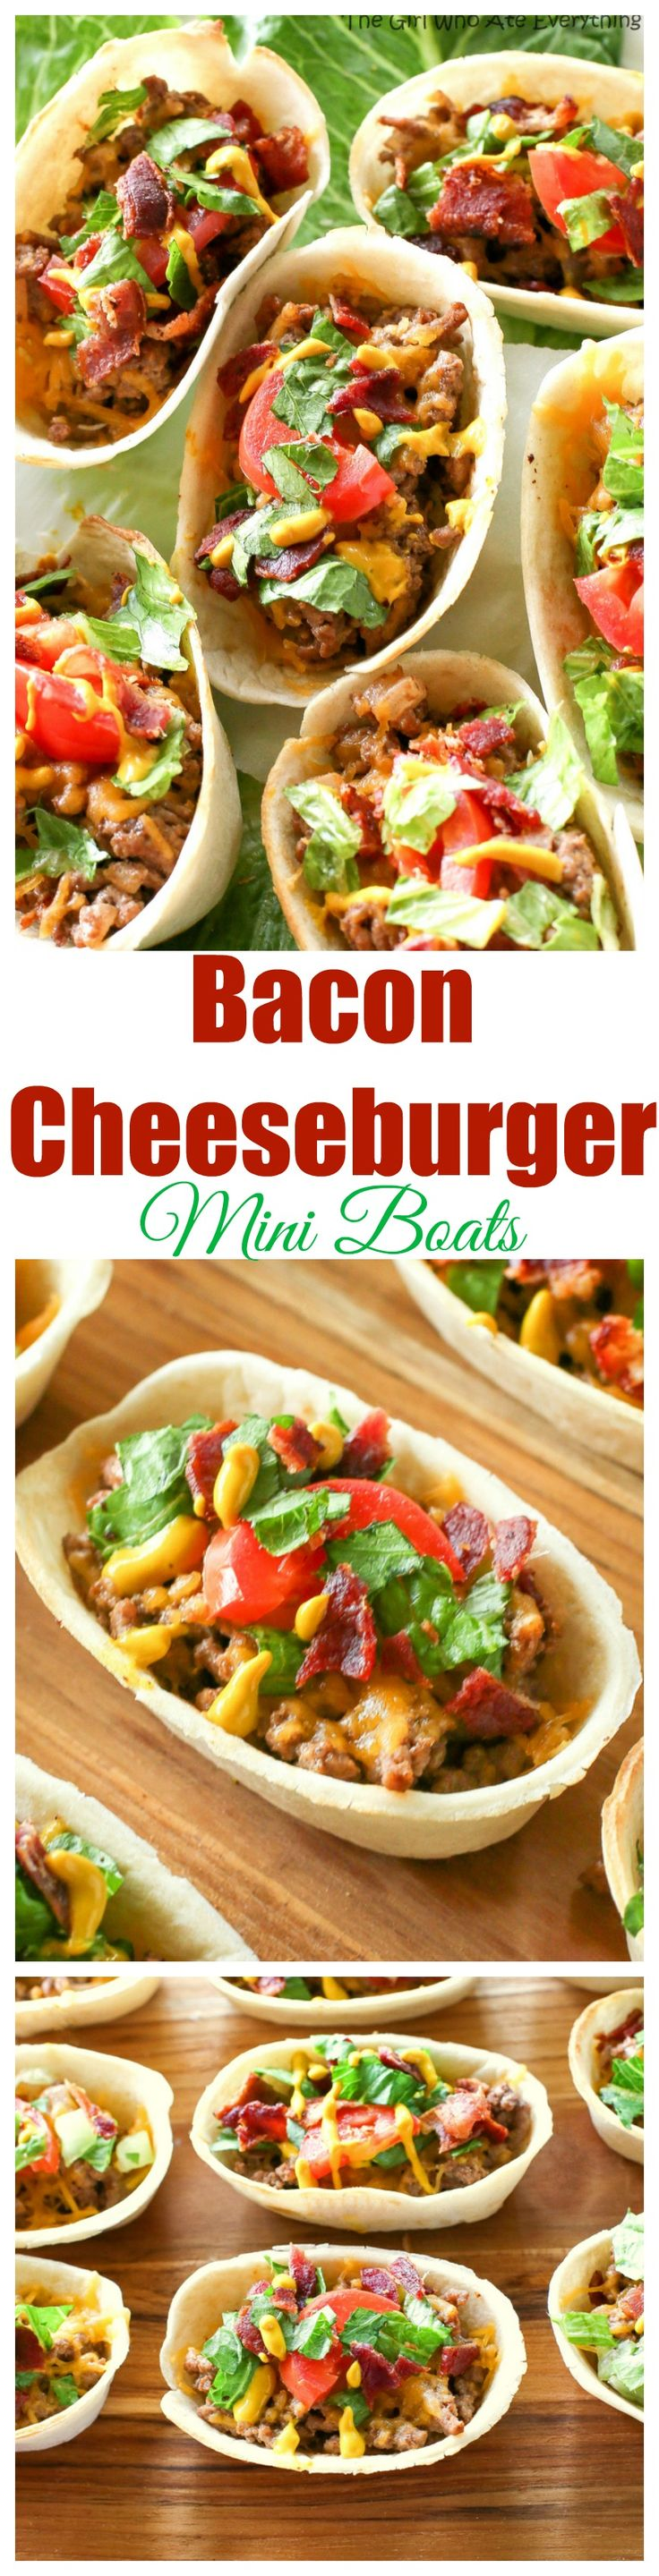 These Bacon Cheeseburger Mini Boats take your regular taco up a notch! Beef, bacon, cheese, and all your favorite burger toppings in one taco. You'll love these! the-girl-who-ate-everything.com